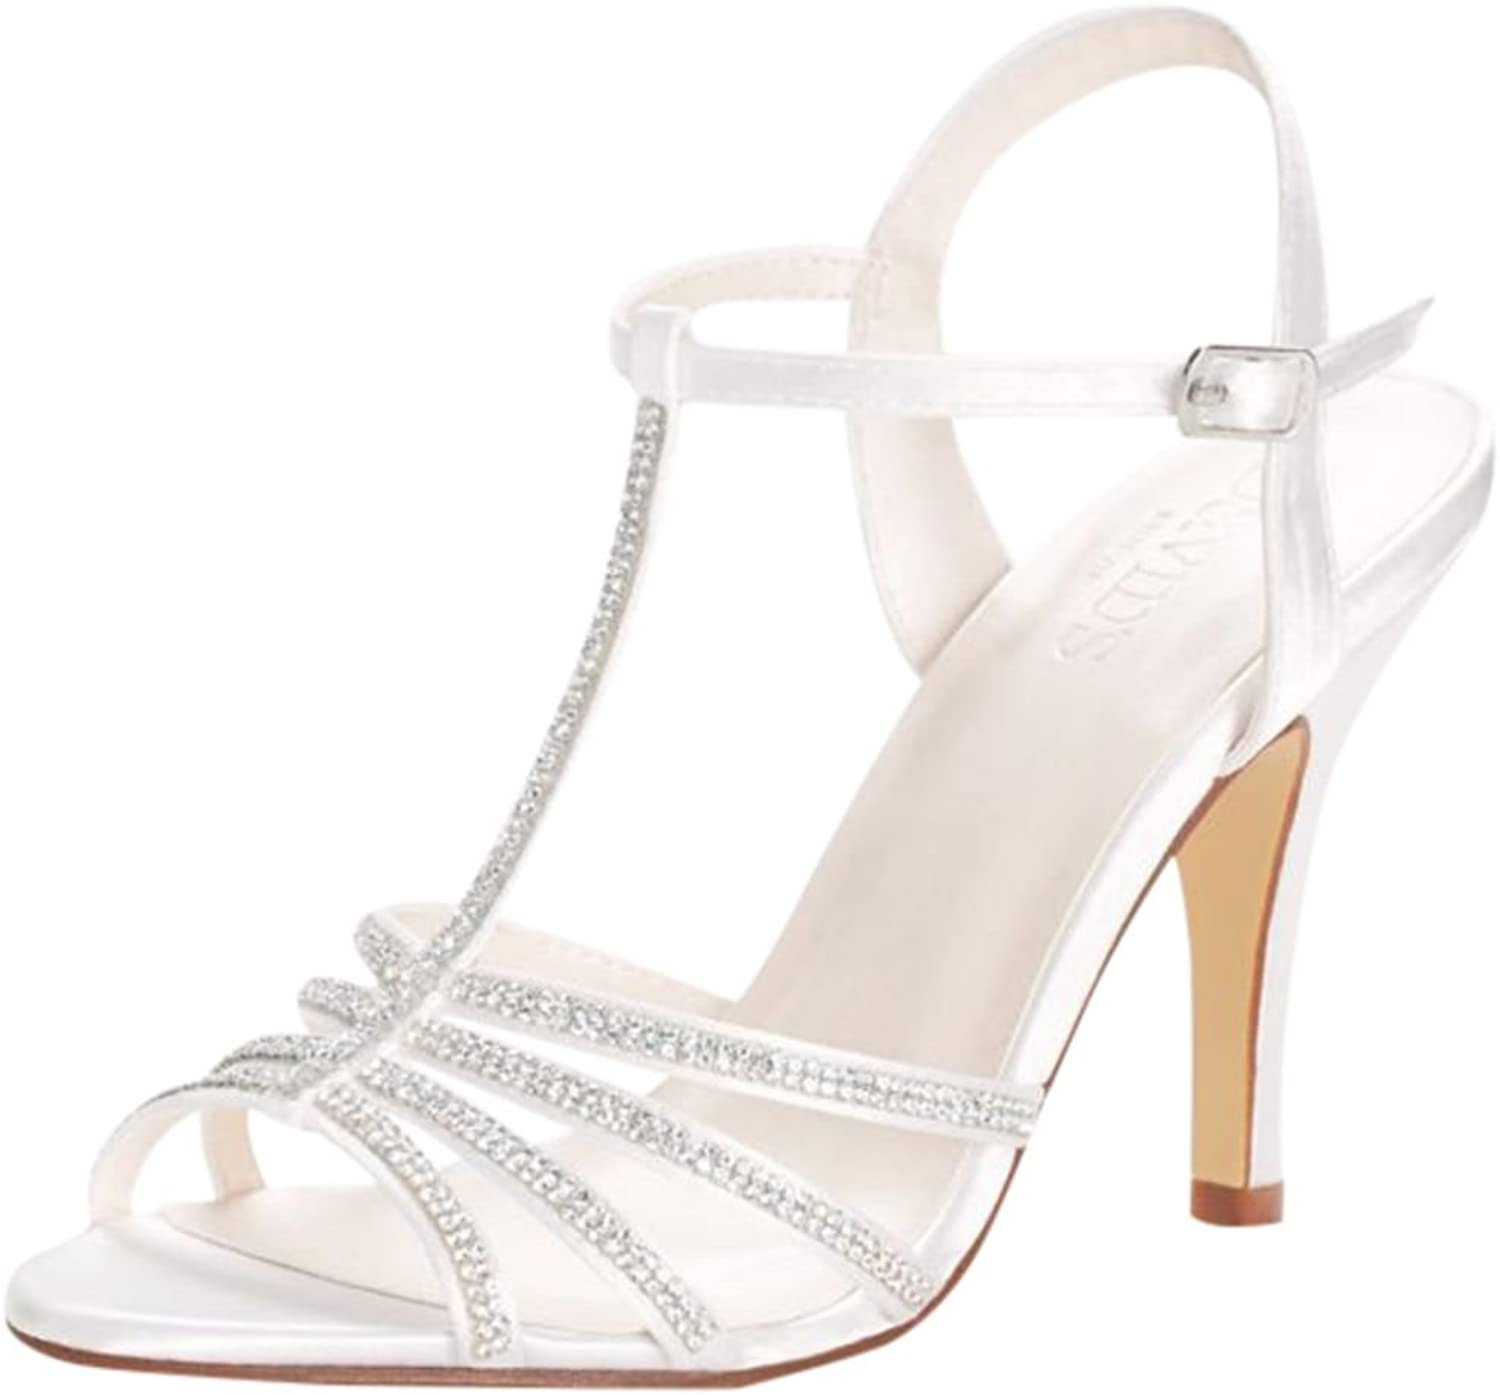 David's Bridal Women's Hannah Crystal T-Strap High Heel Sandal